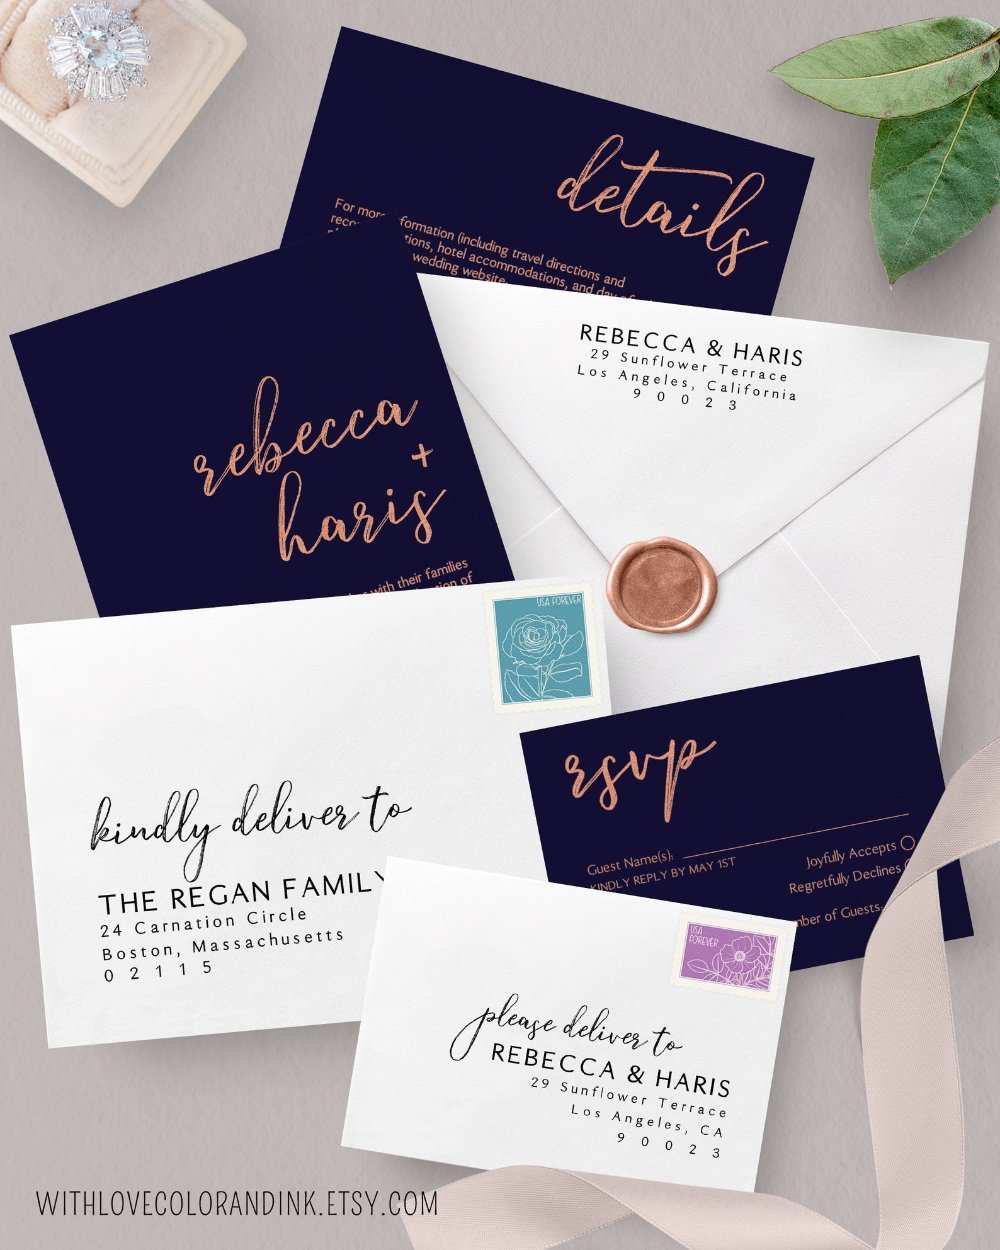 Pin By Rebecca Lt On Wedding Stationery Invitations Programs In 2020 Envelope Template Wedding Stationery Card Envelopes